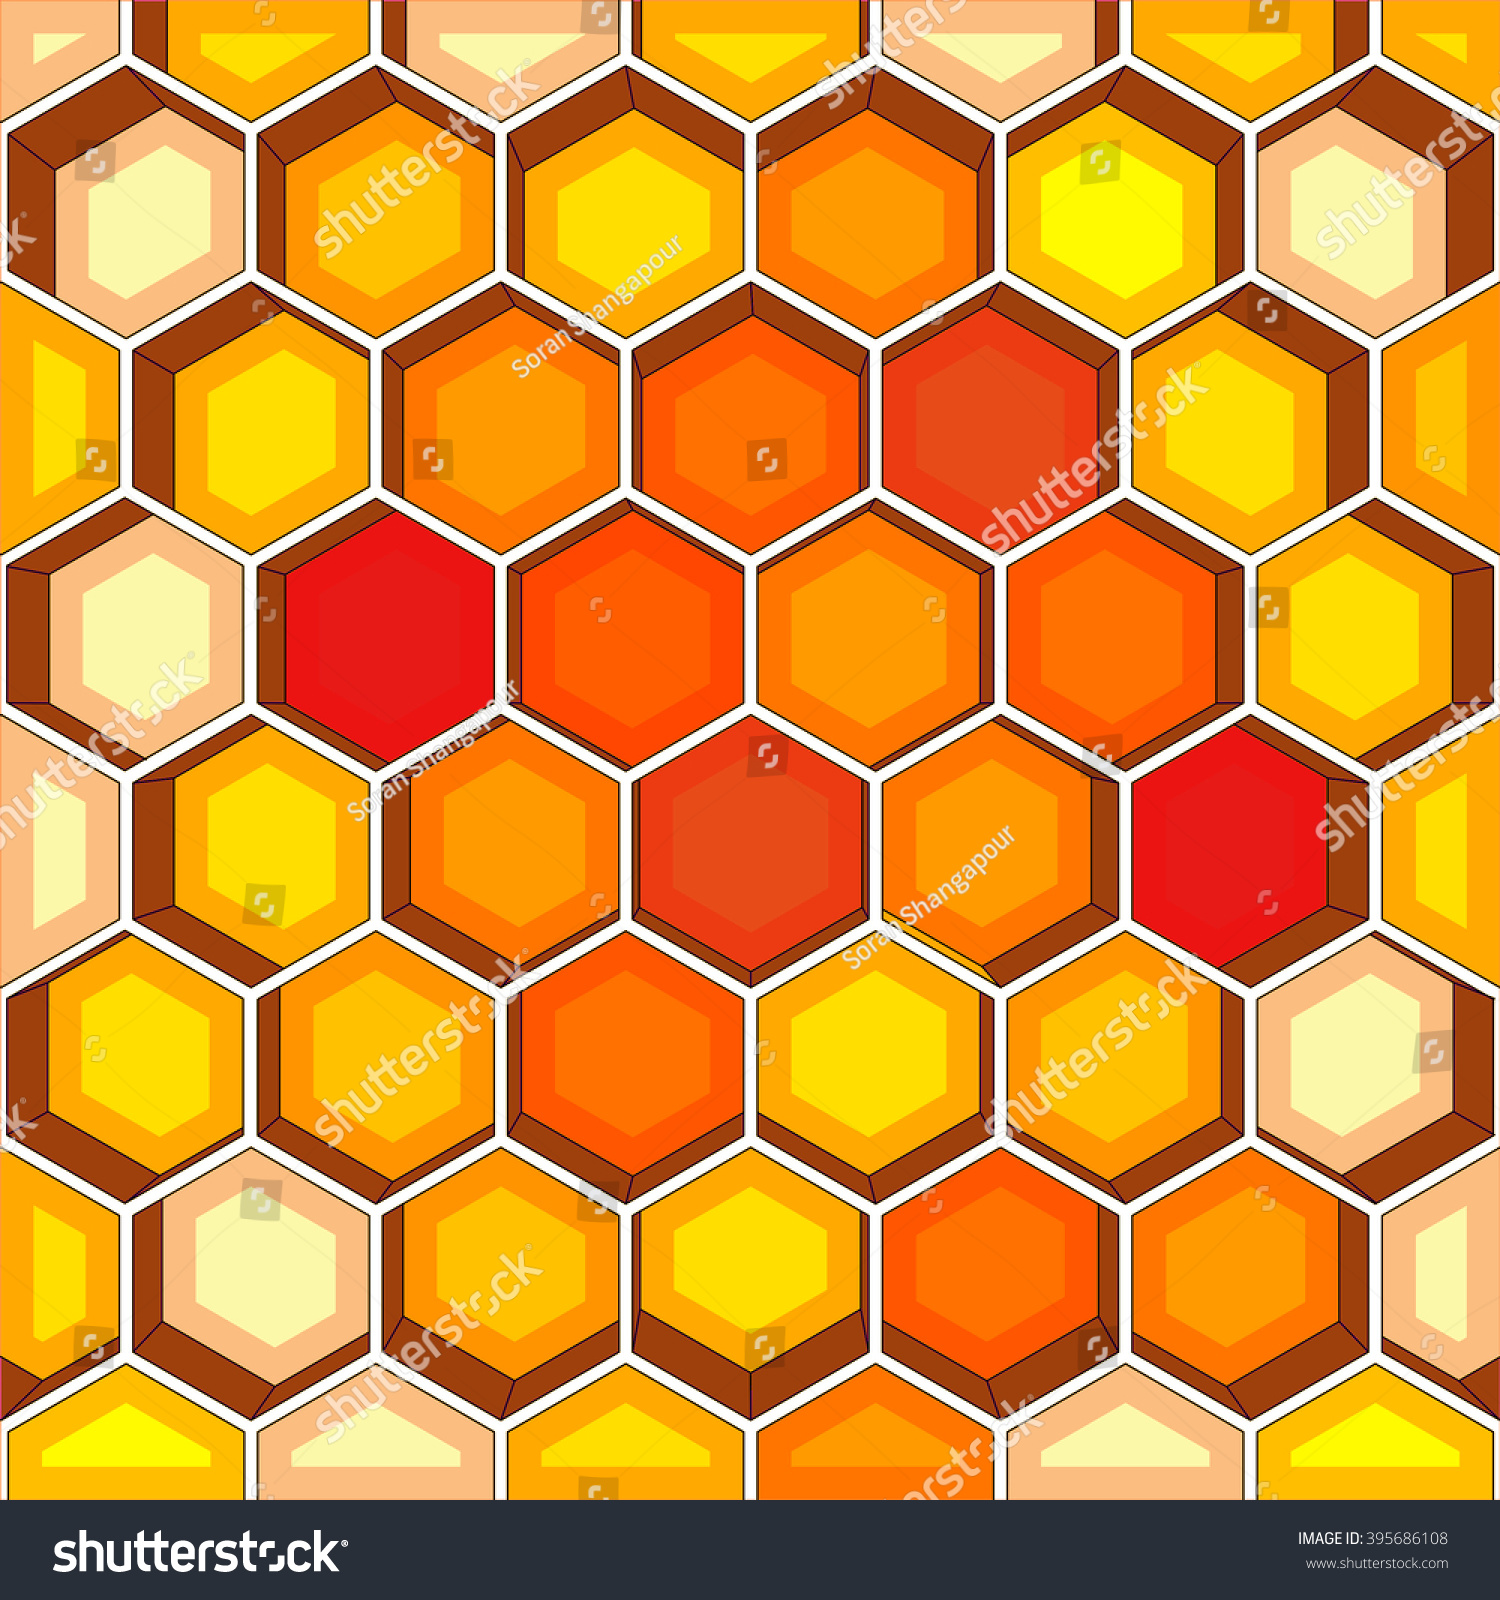 Wallpaper Red Yellow Hive Stock Illustration 395686108 1500x1600